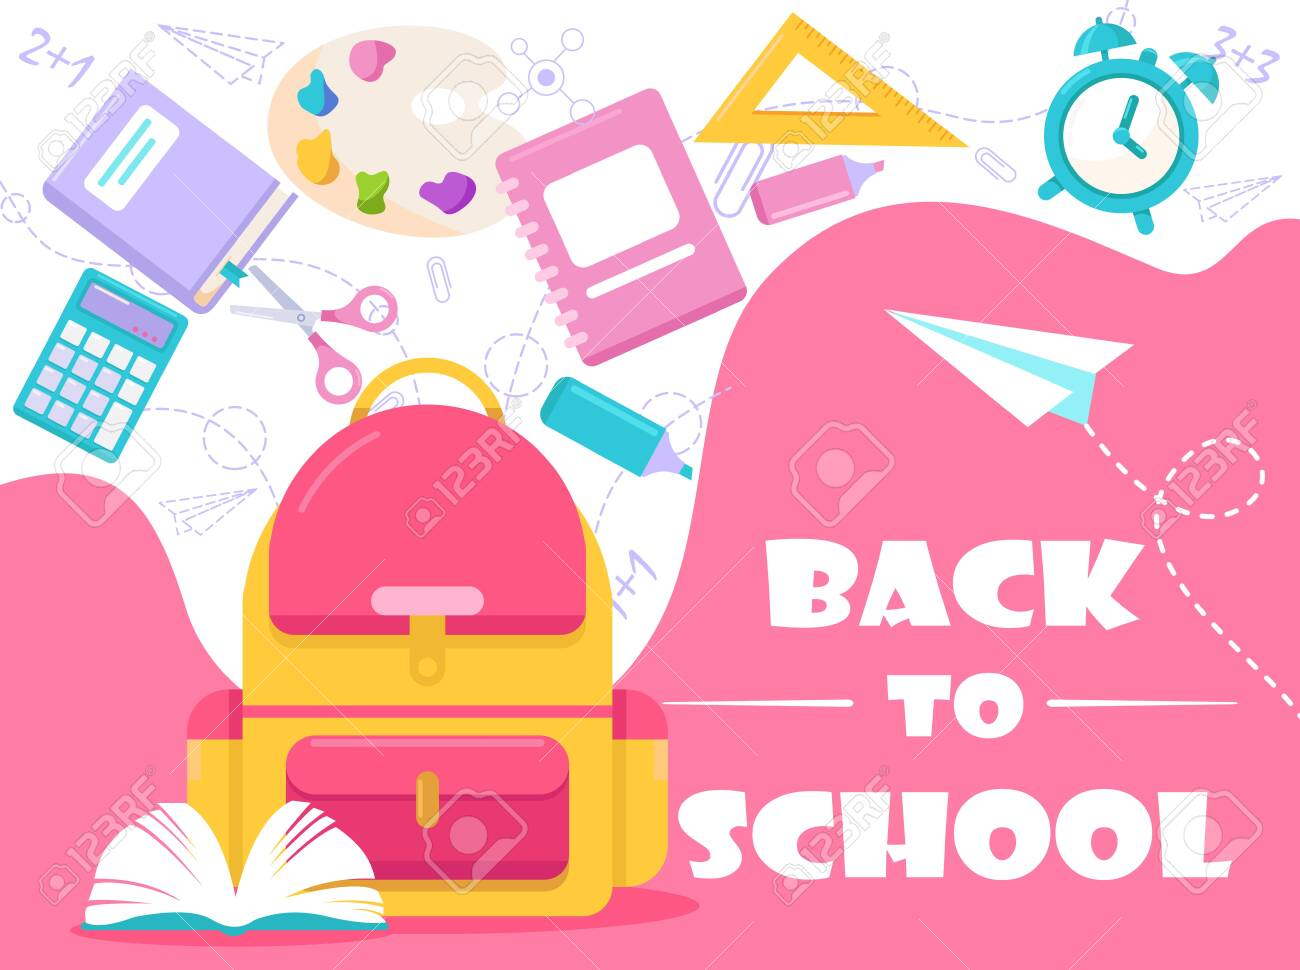 Back to school lettering vector illustration. Cartoon flat stationery, tools supplies and accessories for study in school, college or university. Education concept background for poster or web banner - 148957201